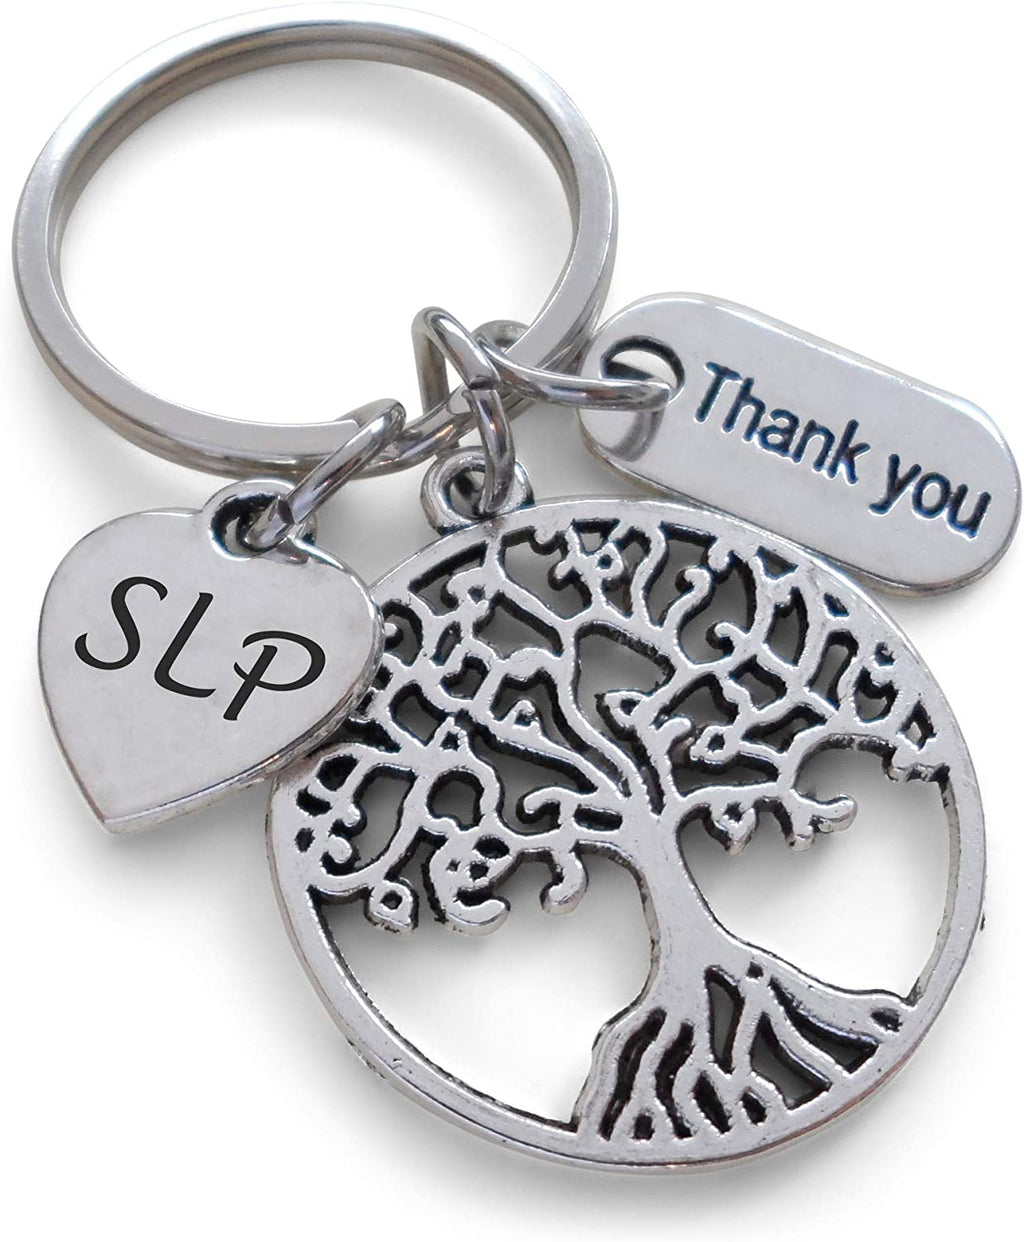 "Employee Appreciation Gifts • Speech Therapist Keychain, Speech Language Pathologist Keychain with Tree, SLP Heart, and ""Thank You"" Tag w/ ""Thanks for helping me grow"" Card by JewelryEveryday"